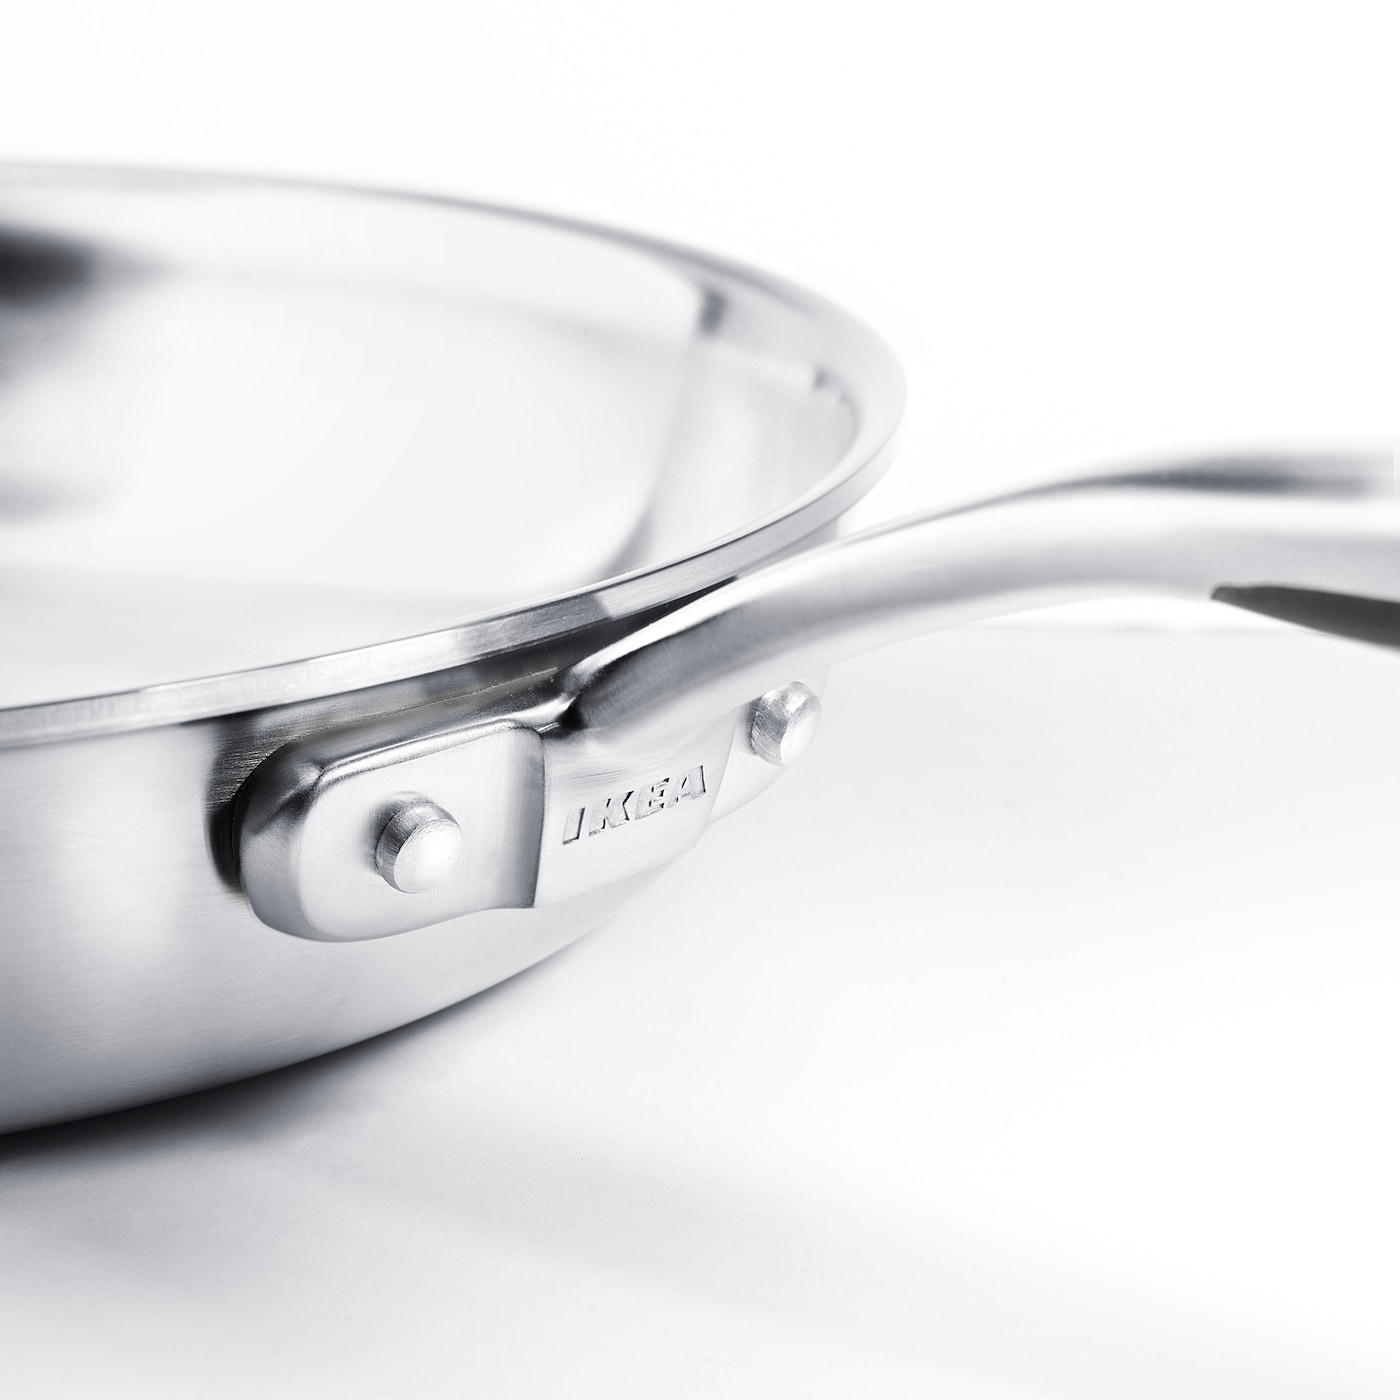 SENSUELL Frying pan, stainless steel/grey, 28 cm